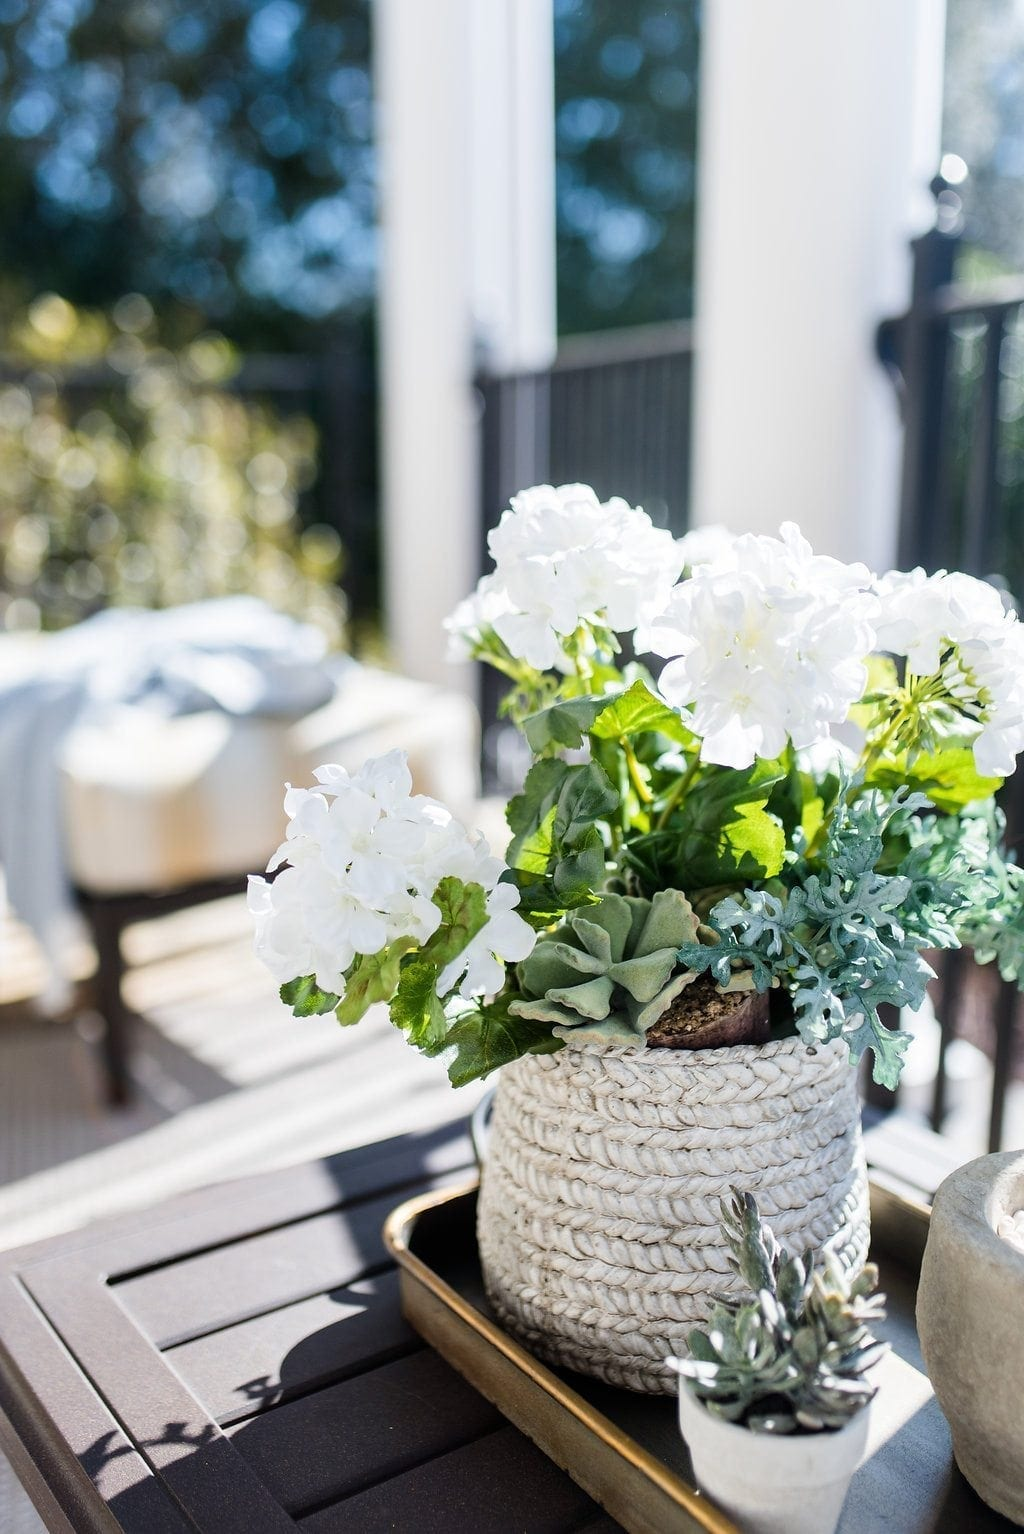 Small flowers in shade. White geraniums and succulents.